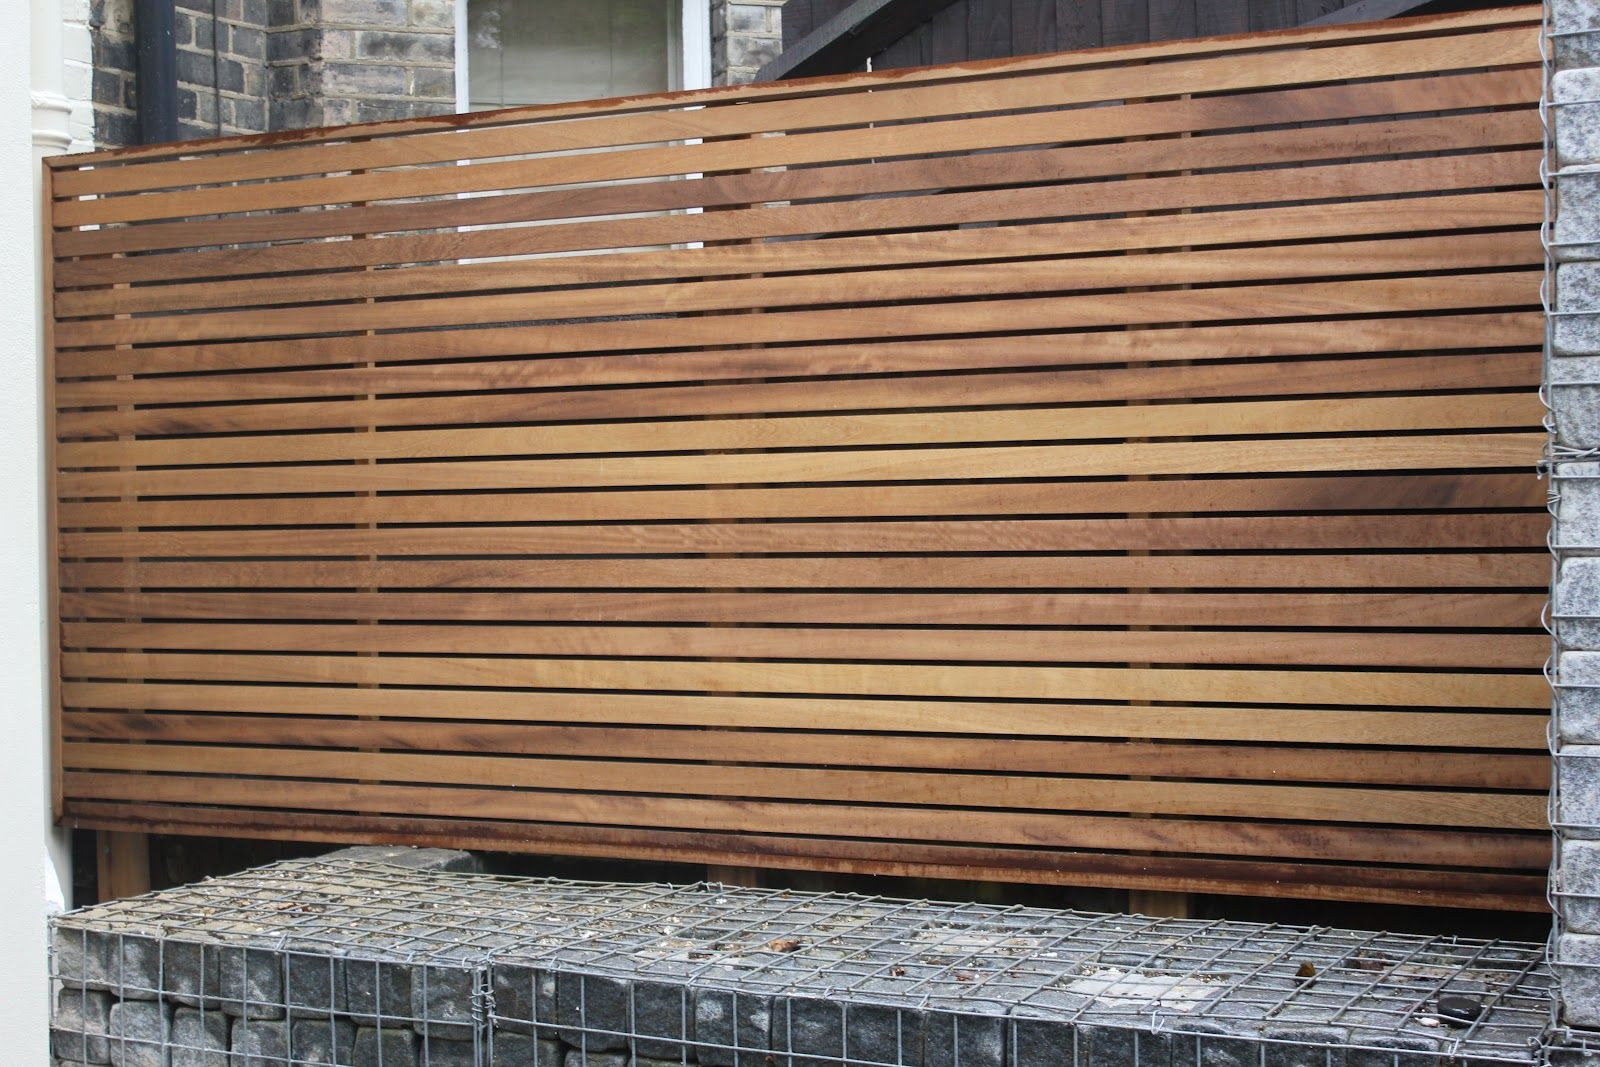 Wood Slat Wall wooden furniture in home decoration | wood slat wall, slat wall